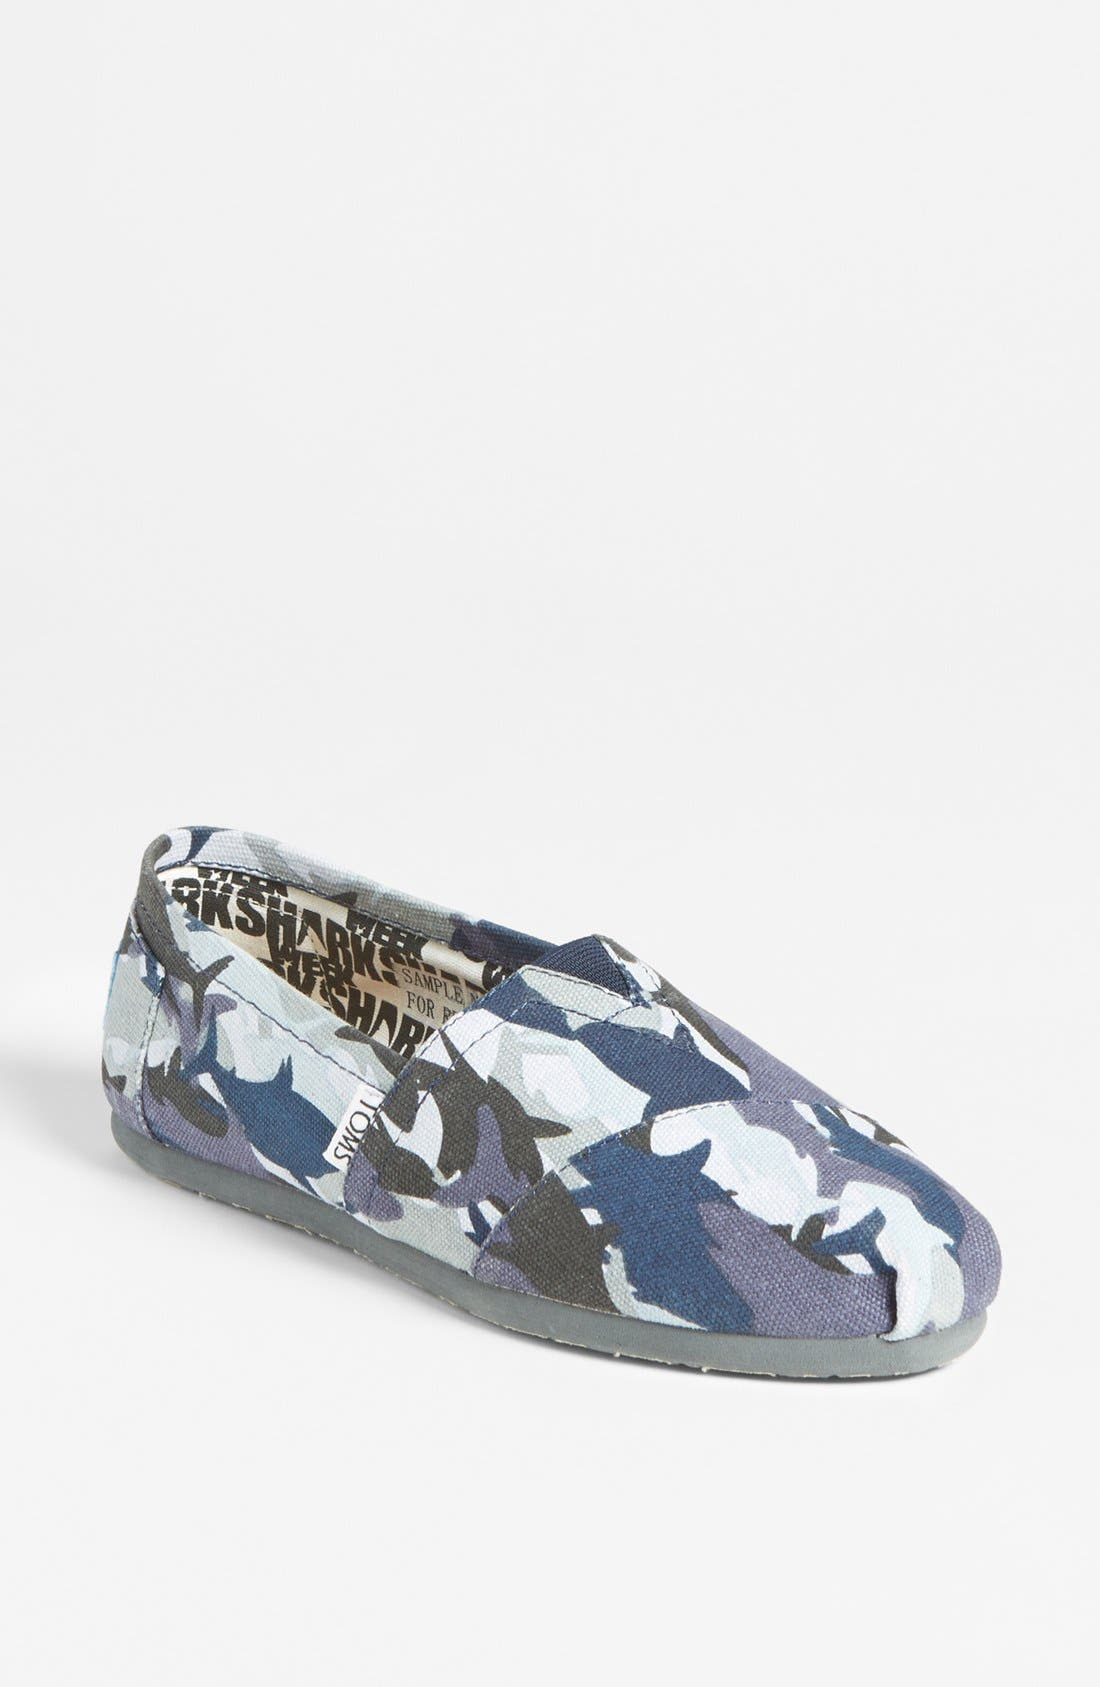 Main Image - TOMS 'Classic - Shark Week' Slip-On (Women) (Limited Edition)